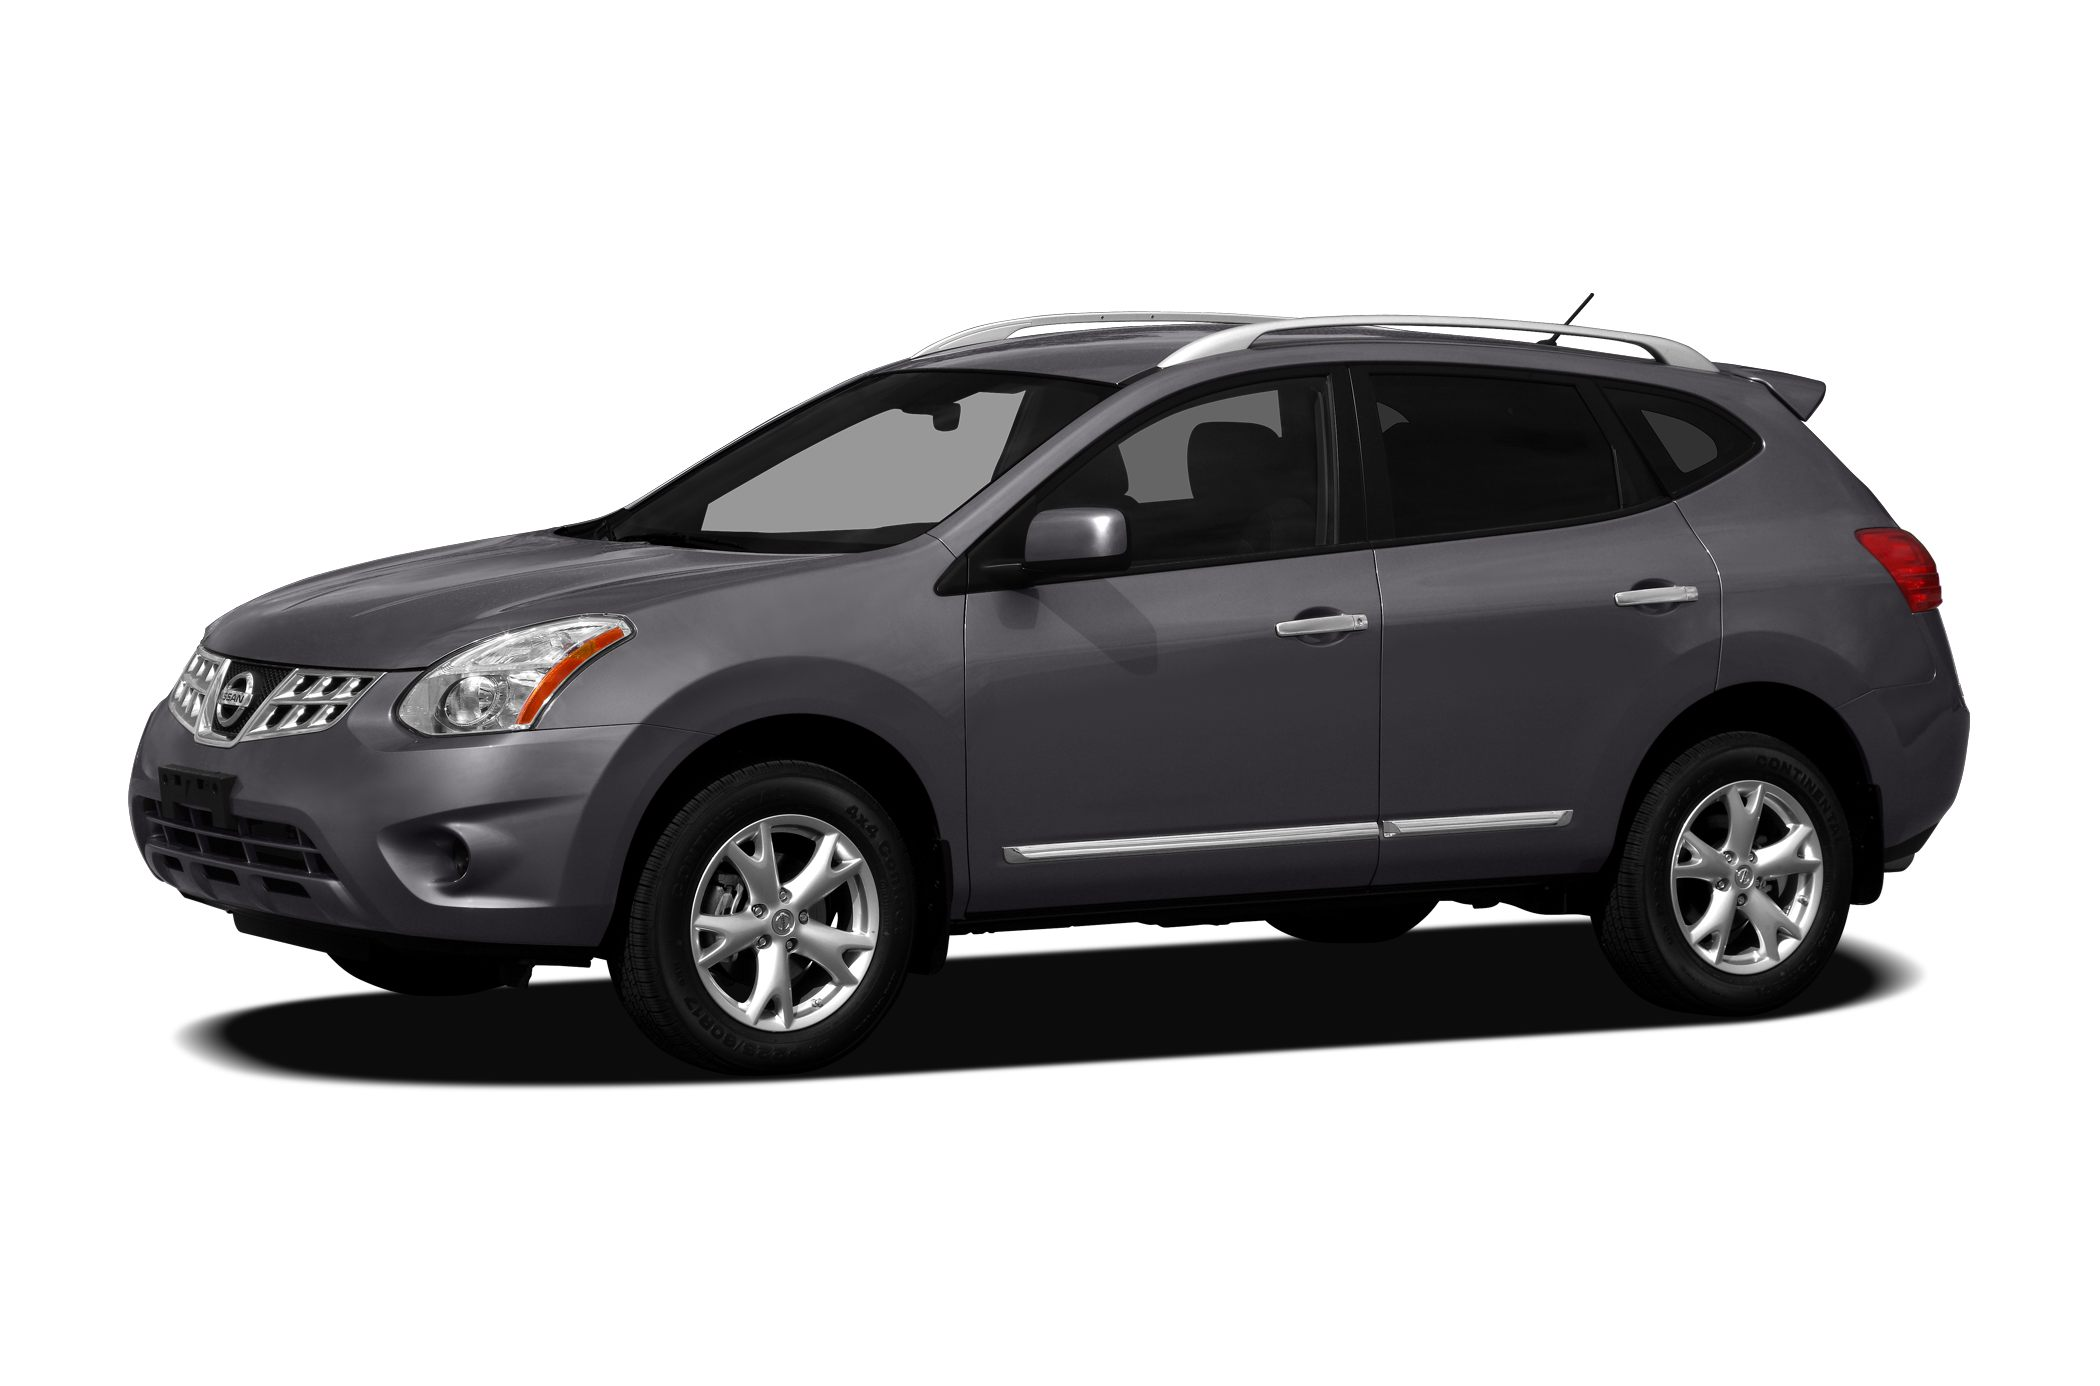 2011 Nissan Rogue S PRICE DROP FROM 17388 EPA 26 MPG Hwy22 MPG City CARFAX 1-Owner GREAT MIL